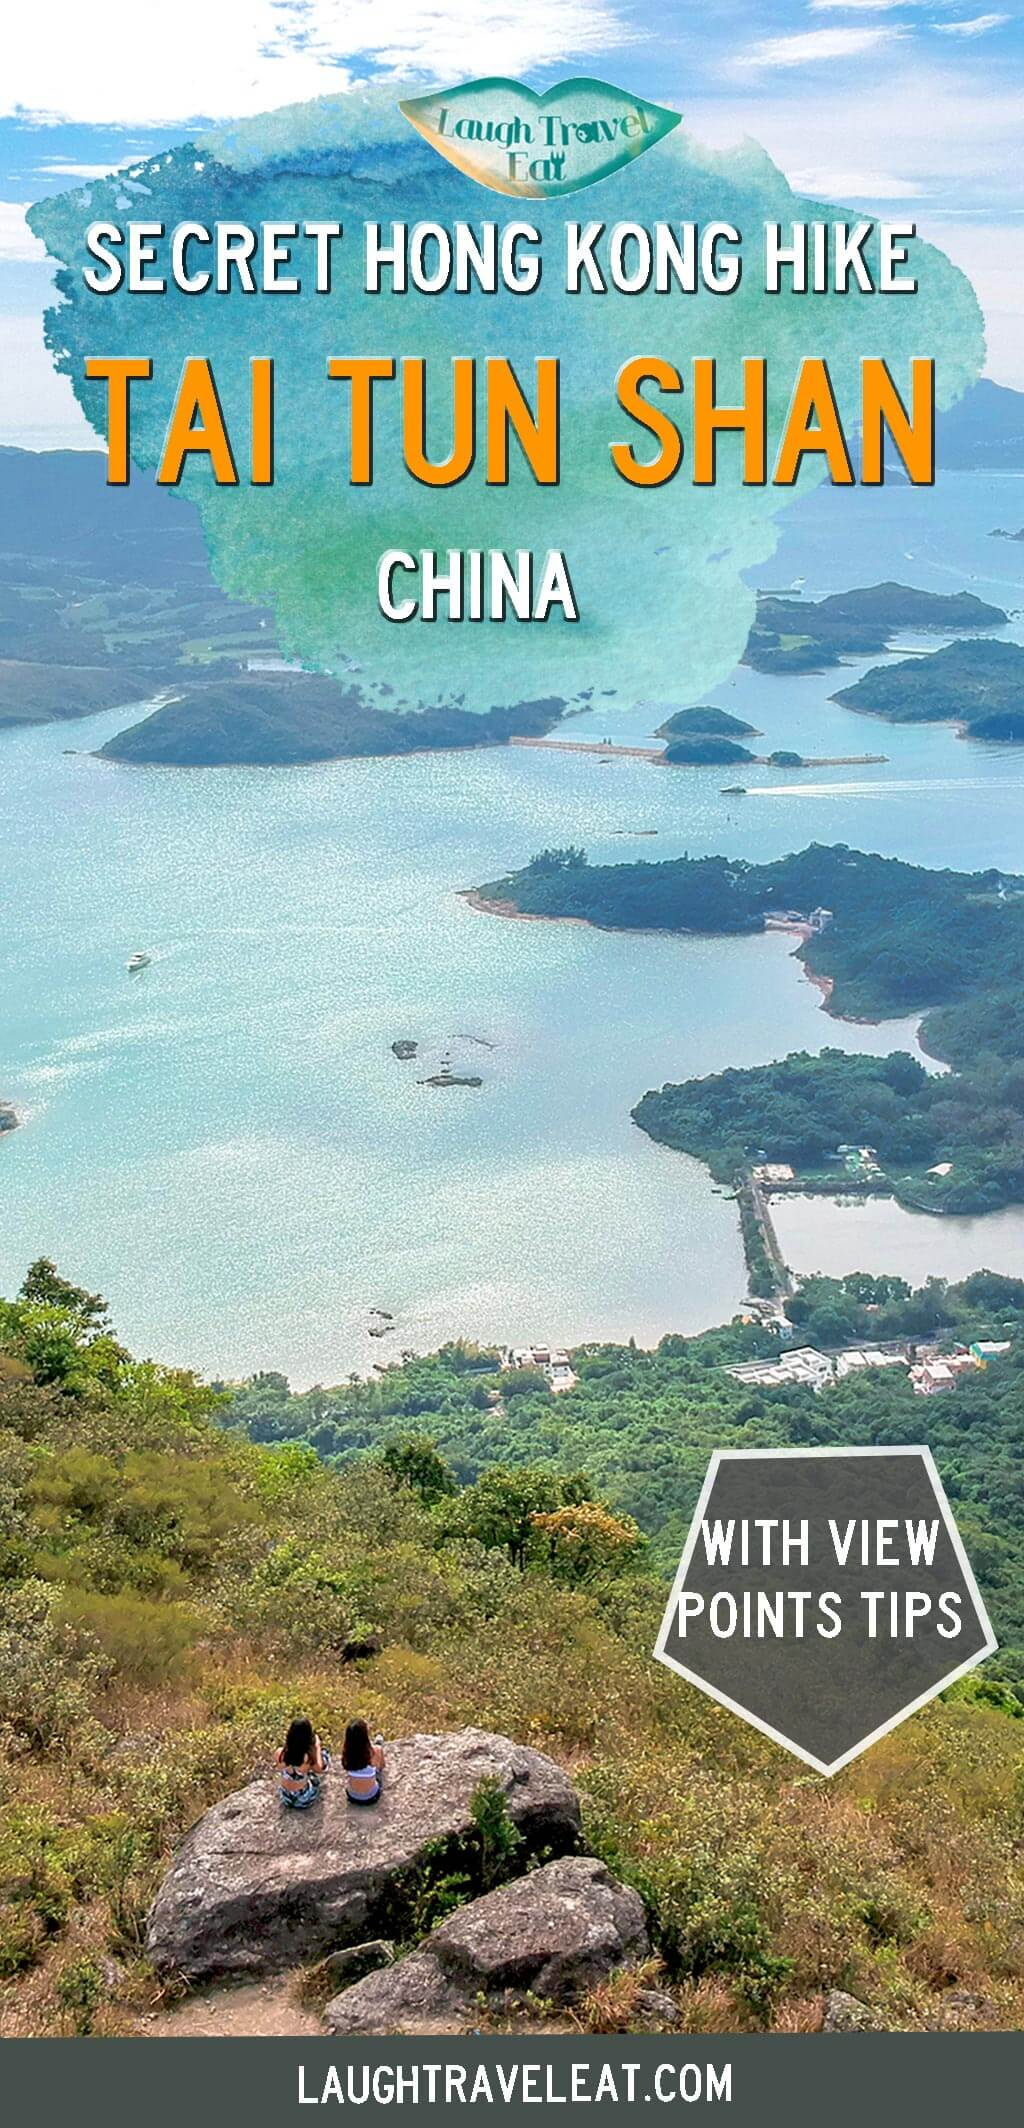 Tai Tun Shan hike in Sai Kung is a perfect half day adventure to see the natural beauty of Hong Kong. Here's how to get there & more: